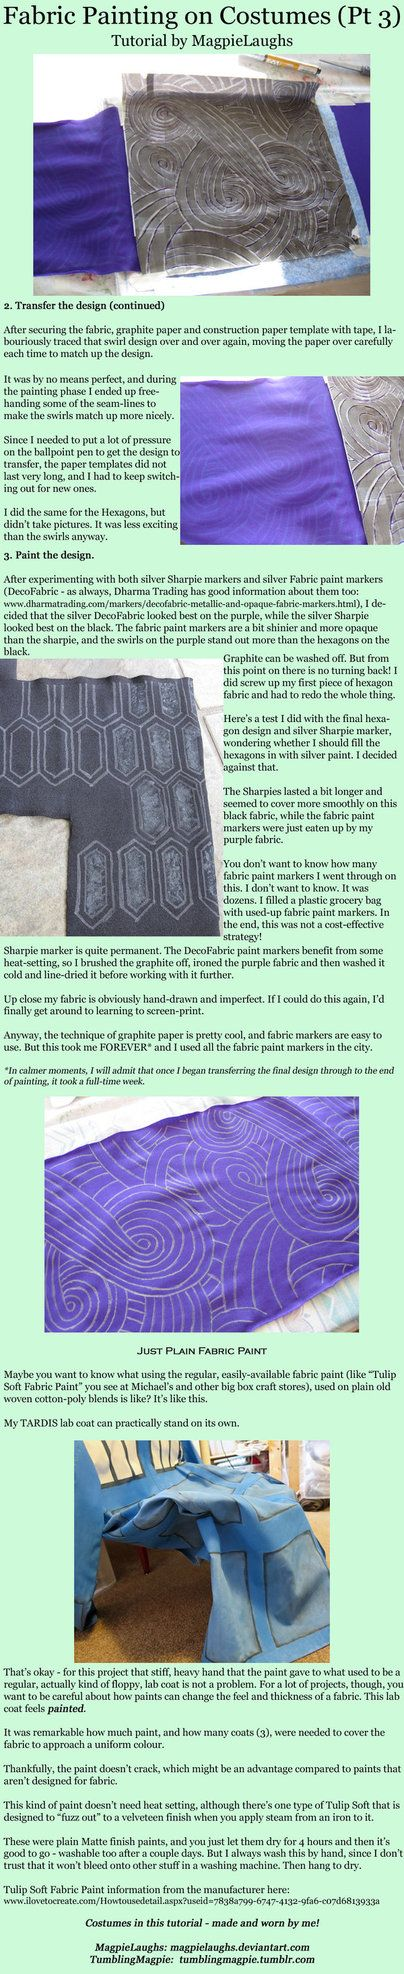 Included: Graphite Paper Design Transfer and Fabric Paint Pens (Tali from Mass Effect) - the exciting conclusion Regular Fabric Paint on Cotton-Poly Woven Fabric (TARDIS lab coat) Part 1: magpielau...